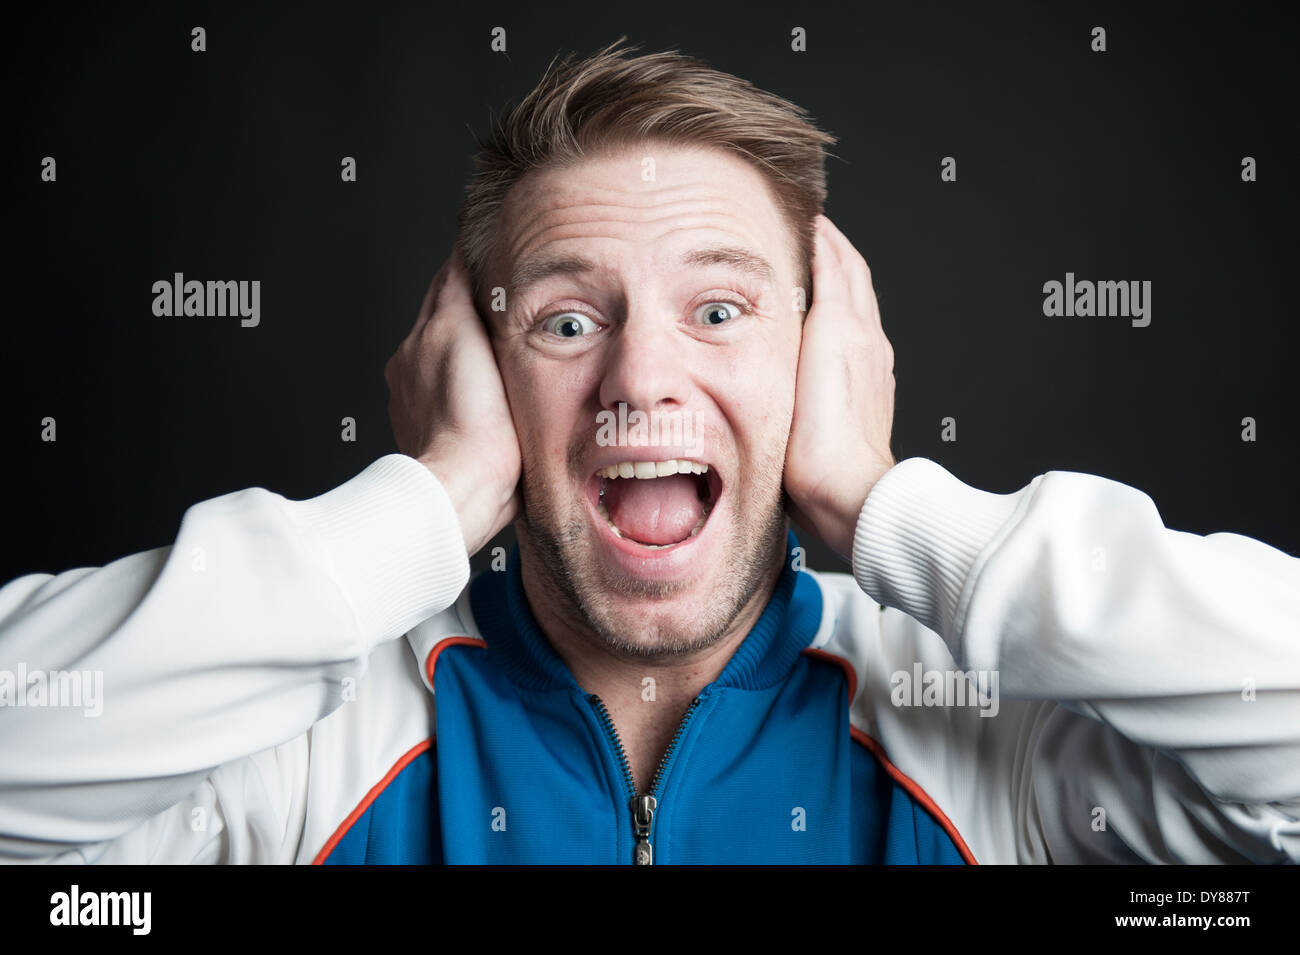 Shocked man holding his ears - Stock Image